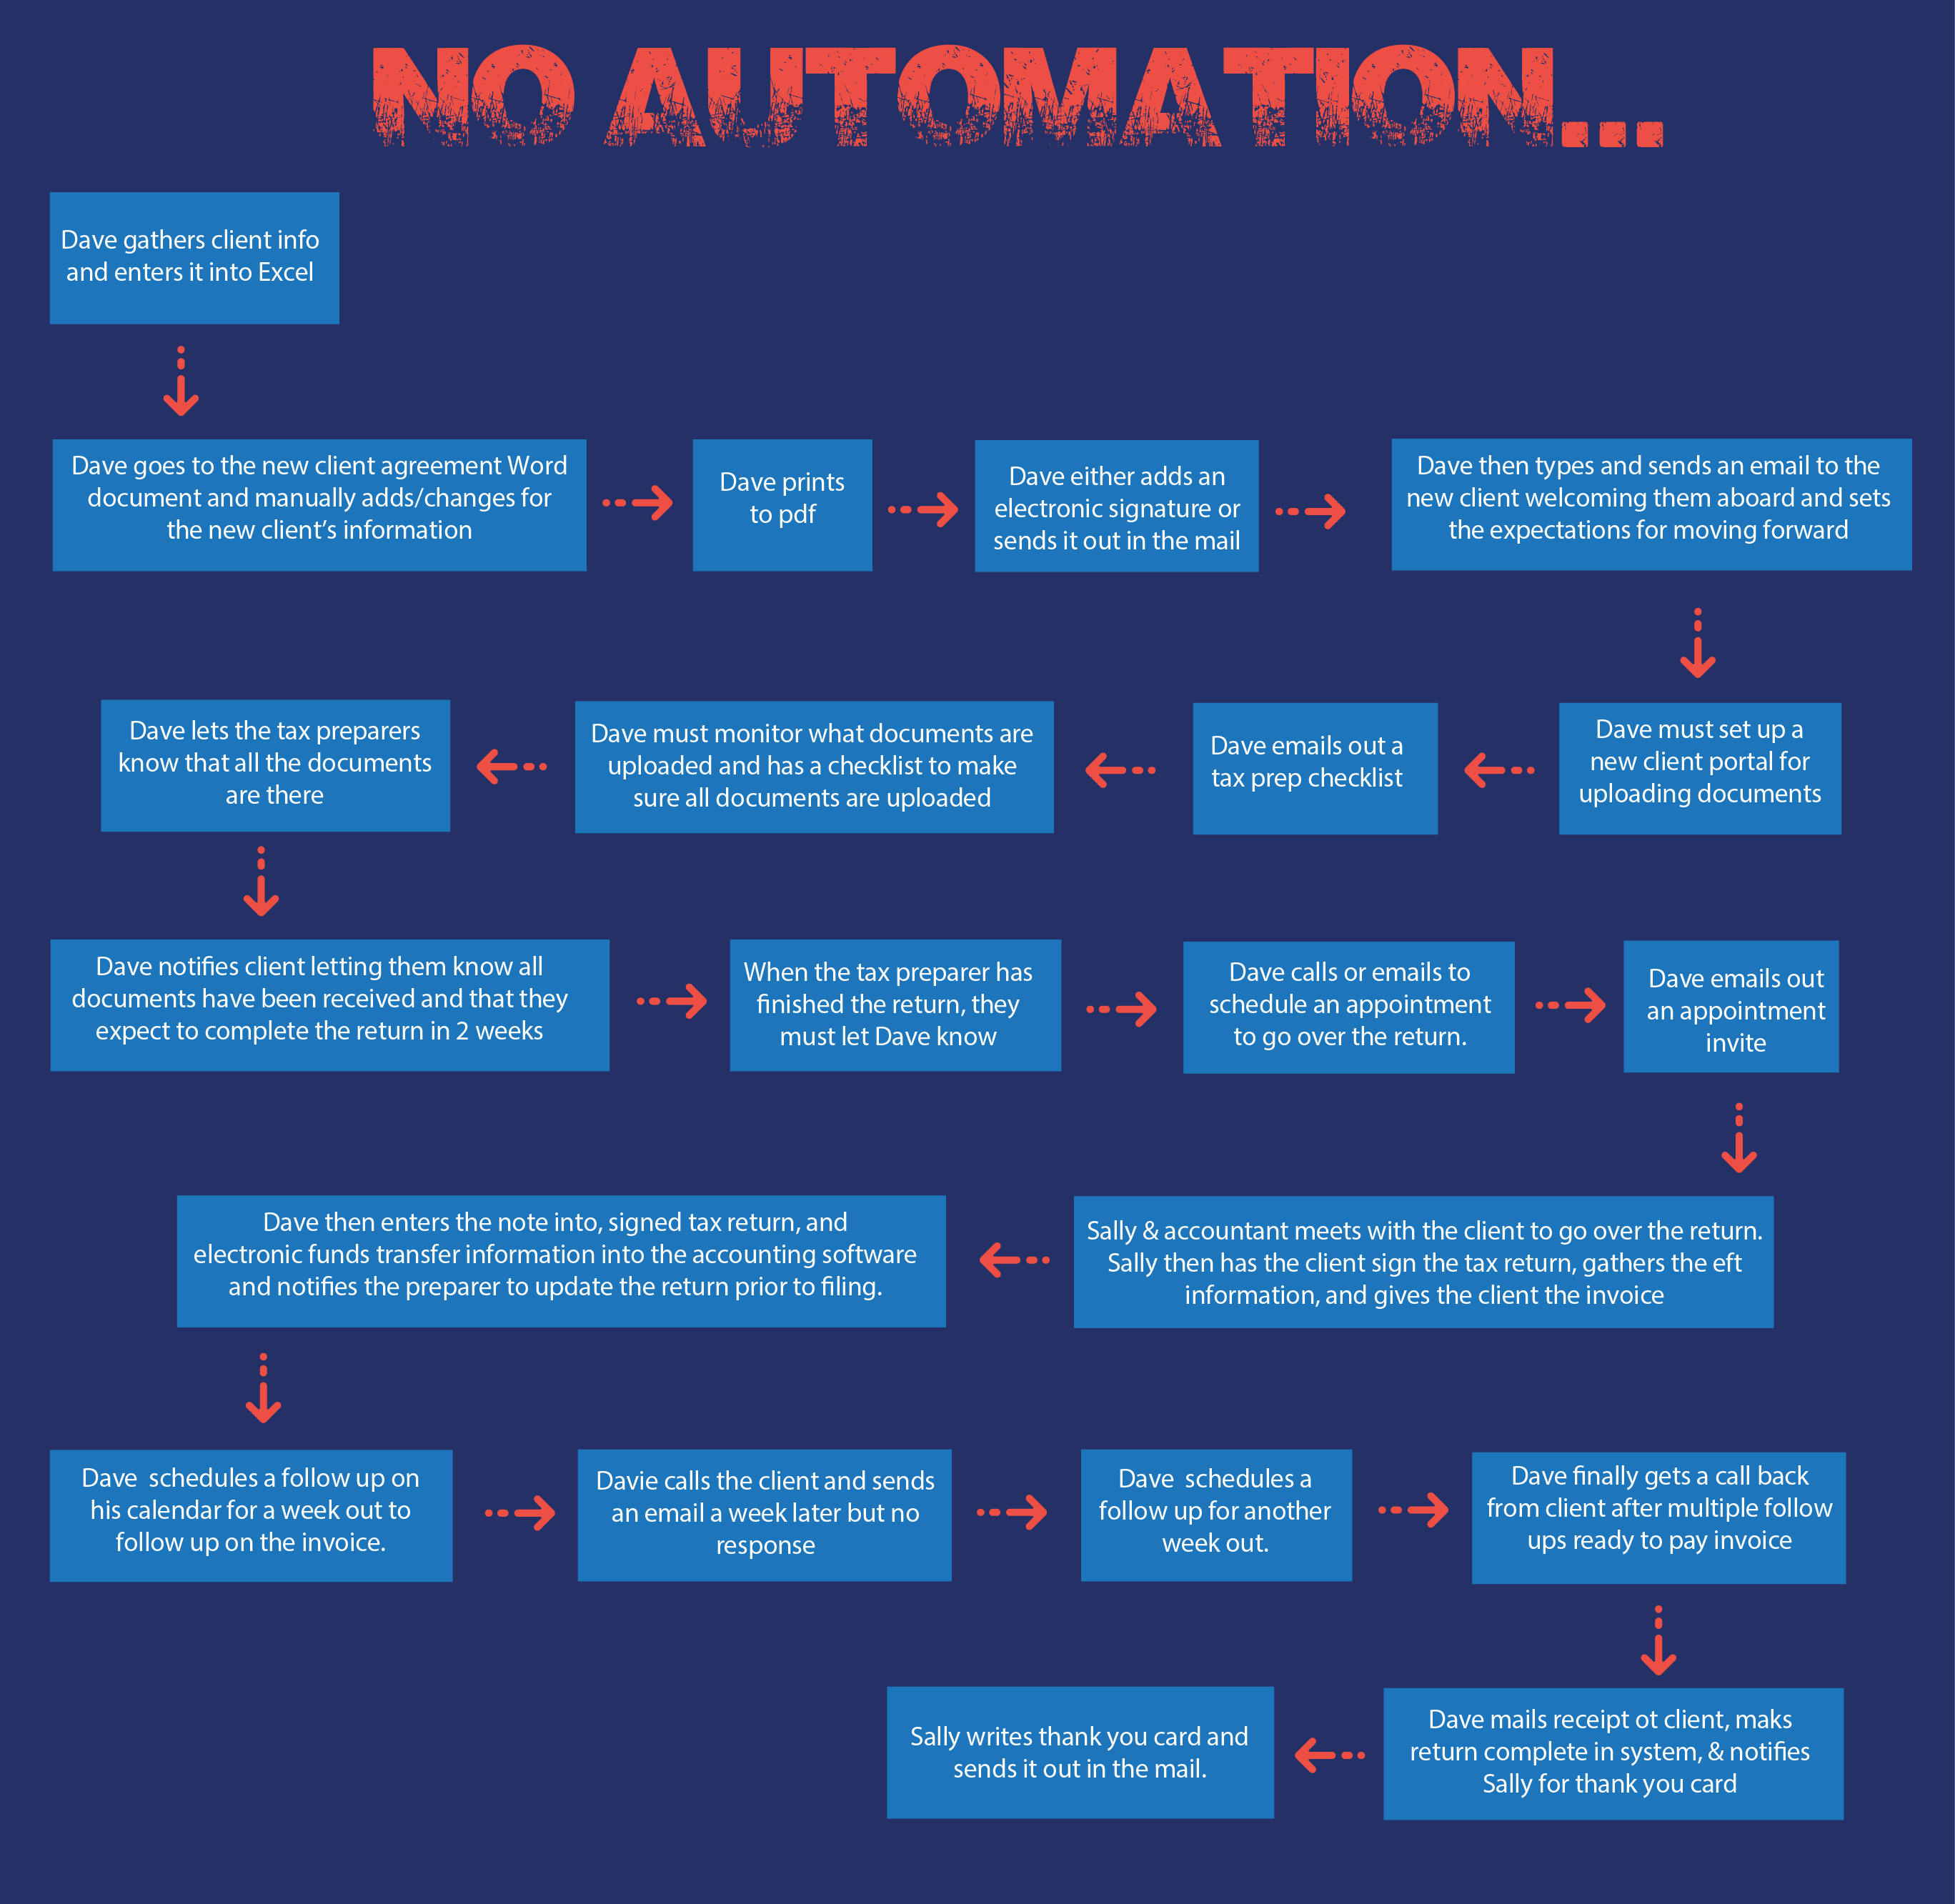 Business Automation Systems, Denver CO